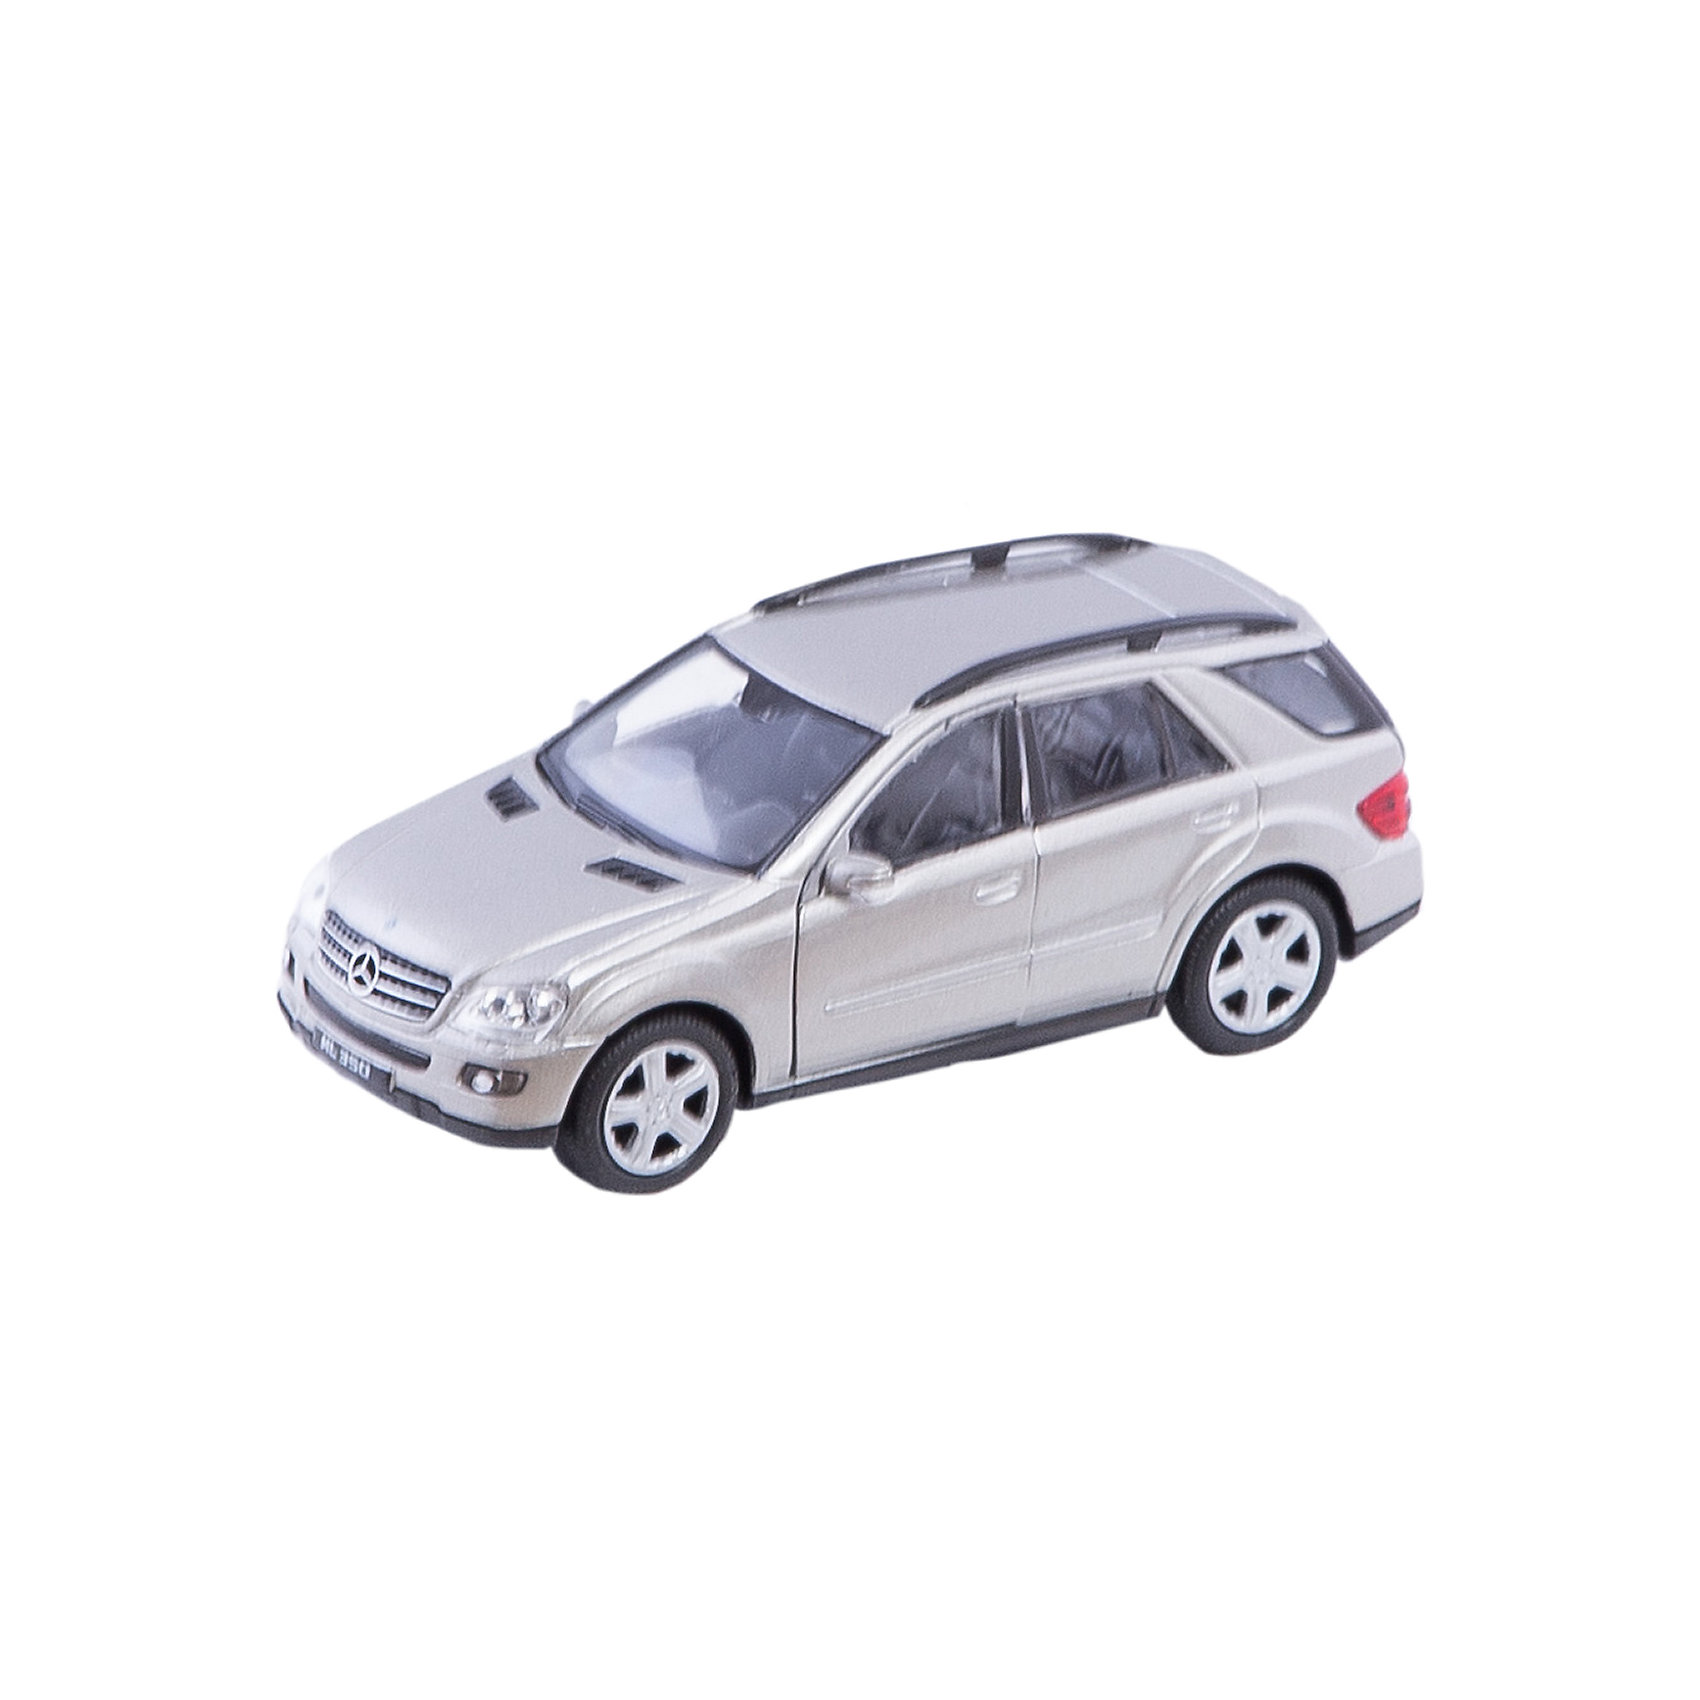 Welly Welly Модель машины 1:34-39 Mercedes-Benz ML350